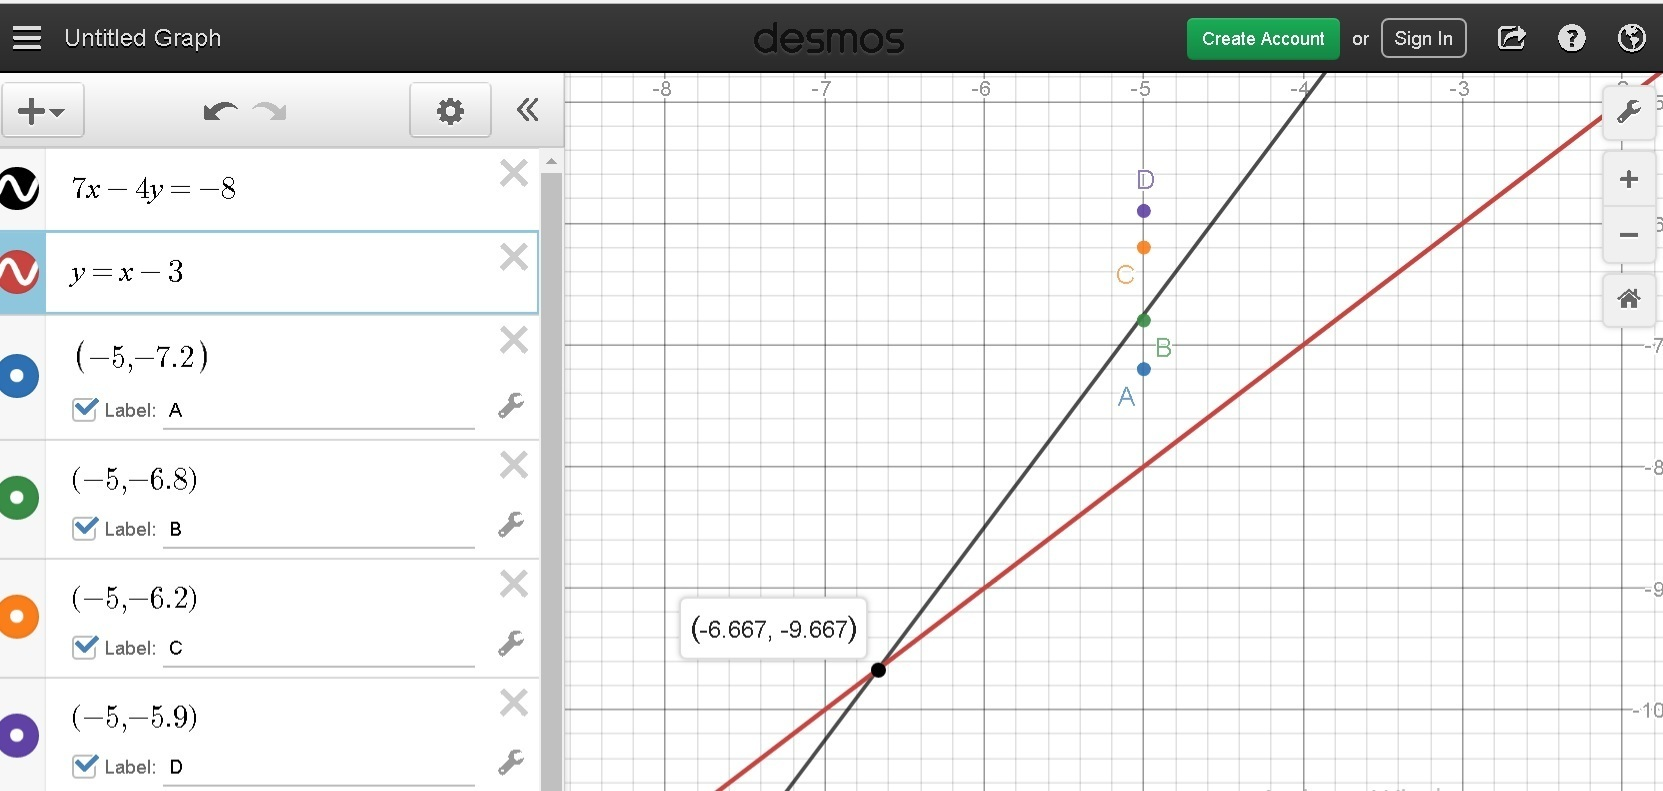 Shannon Graphed The System Of Equations 7x 4y 8 Y X 3 What Is The Closest Approximate